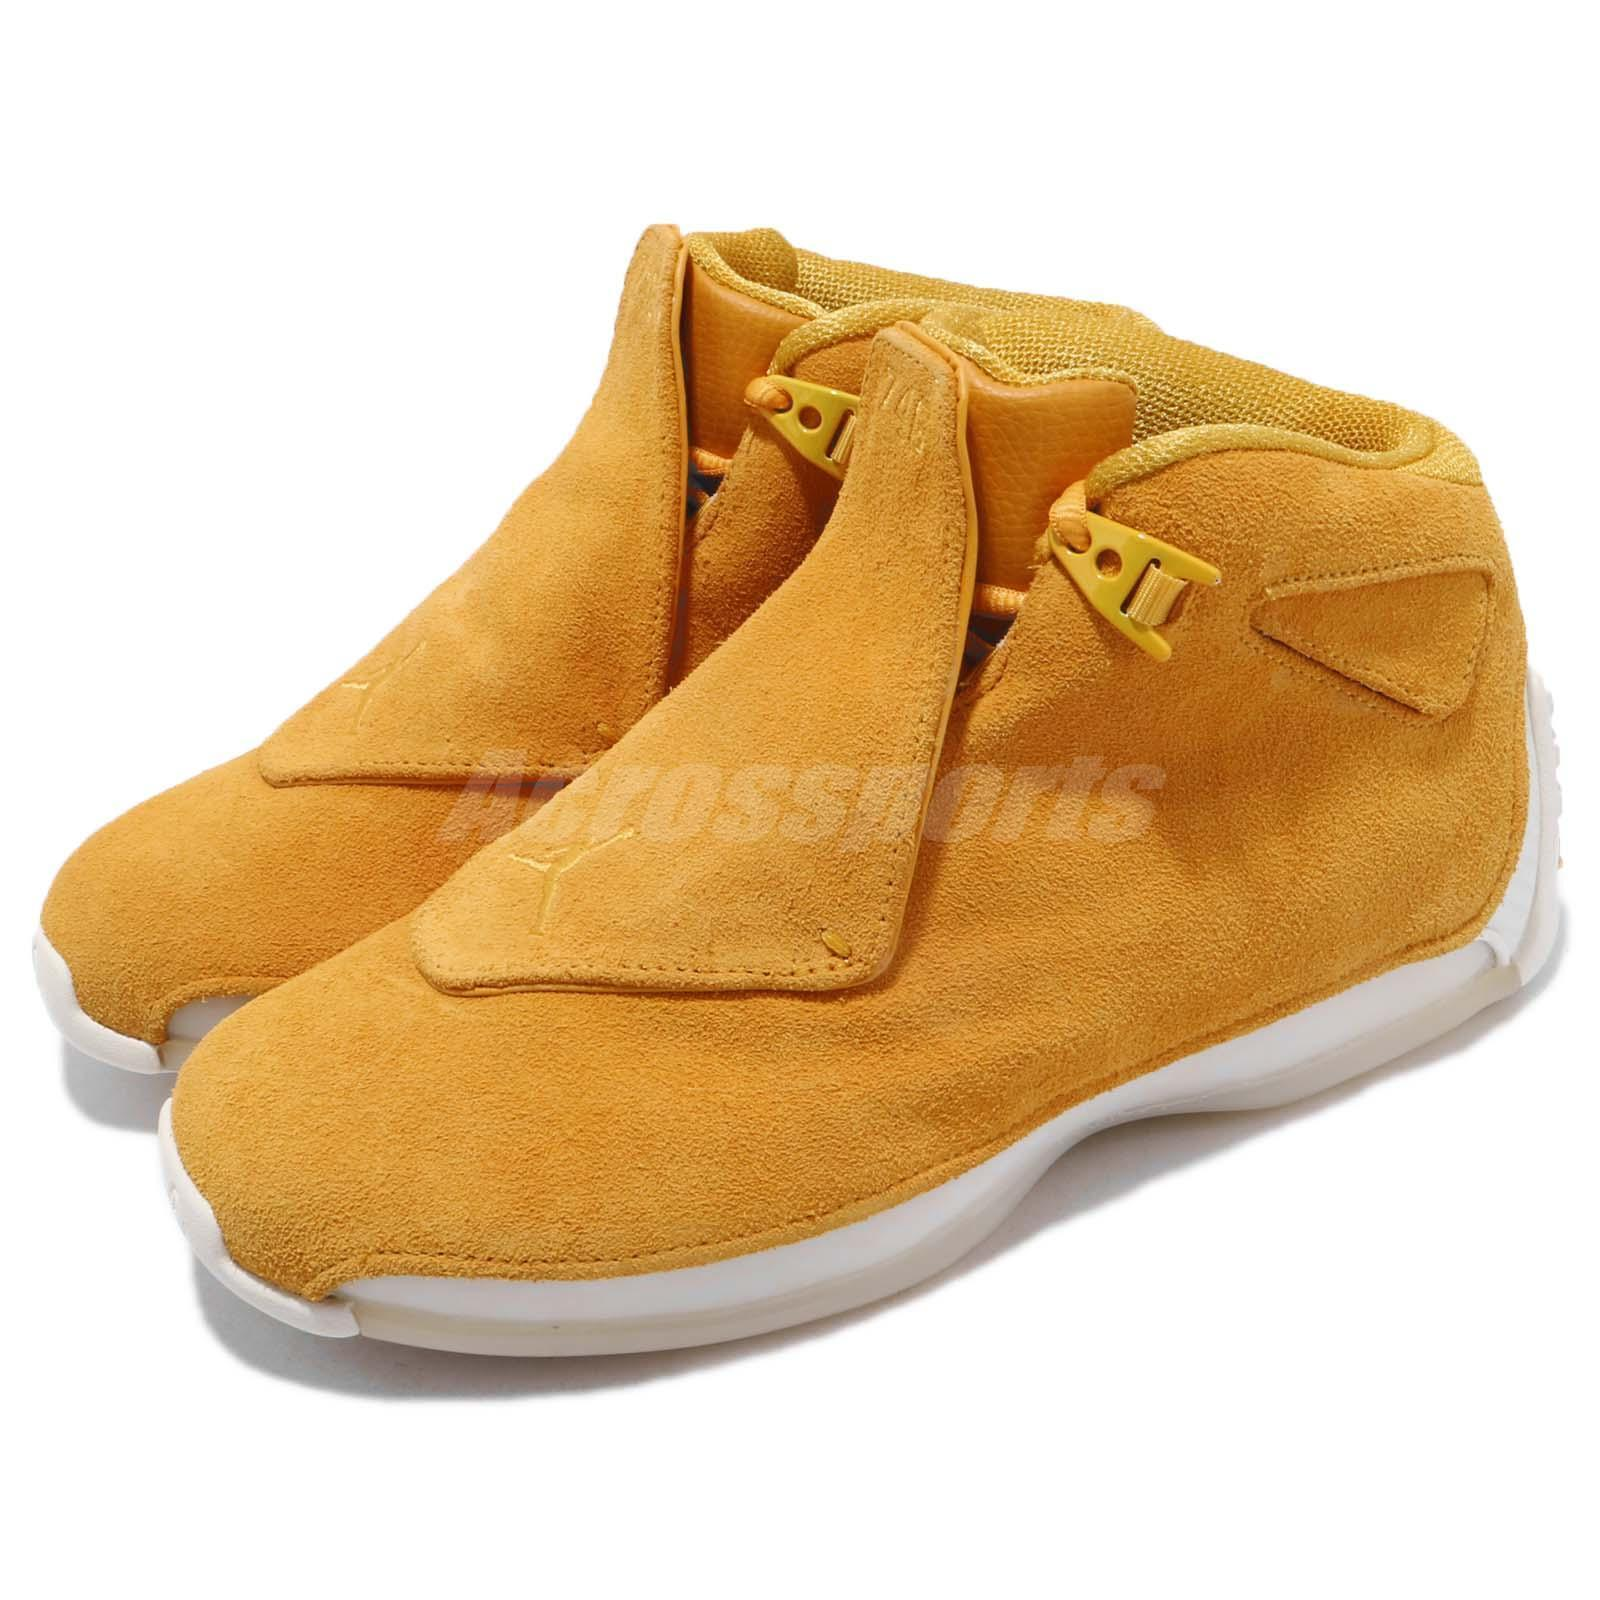 55d6231ad16 ... sweden nike air jordan suede 18 retro yellow ochre suede jordan mens  basketball shoes aa2494 701